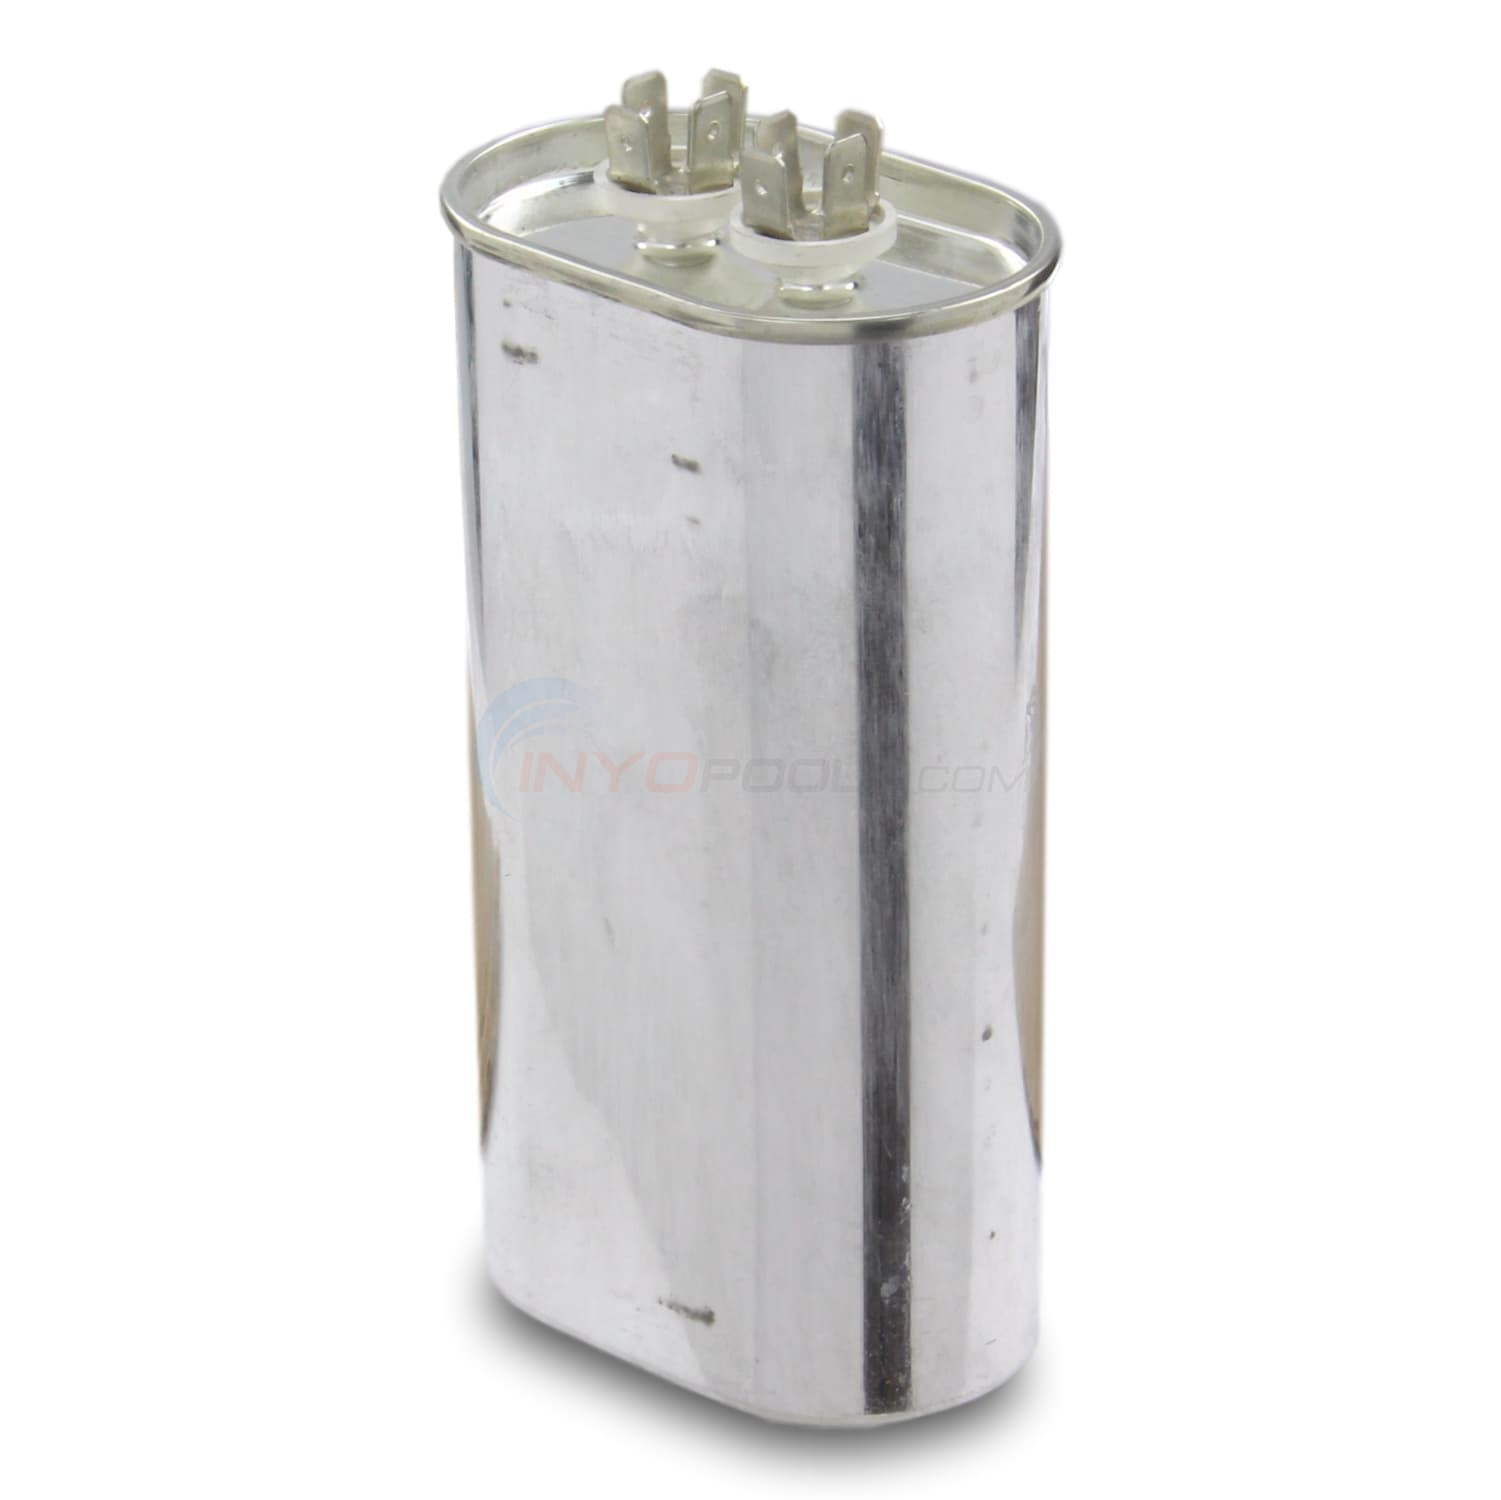 Capacitor, Compressor, 80/370 (1 PH only)- Model 3000